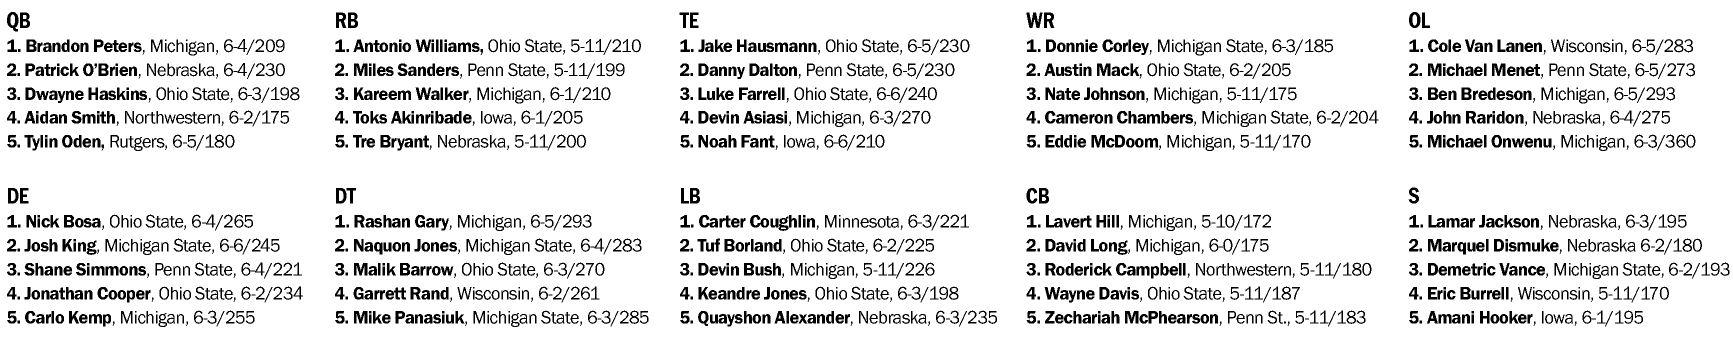 BIG TEN'S BEST AT EACH POSITION